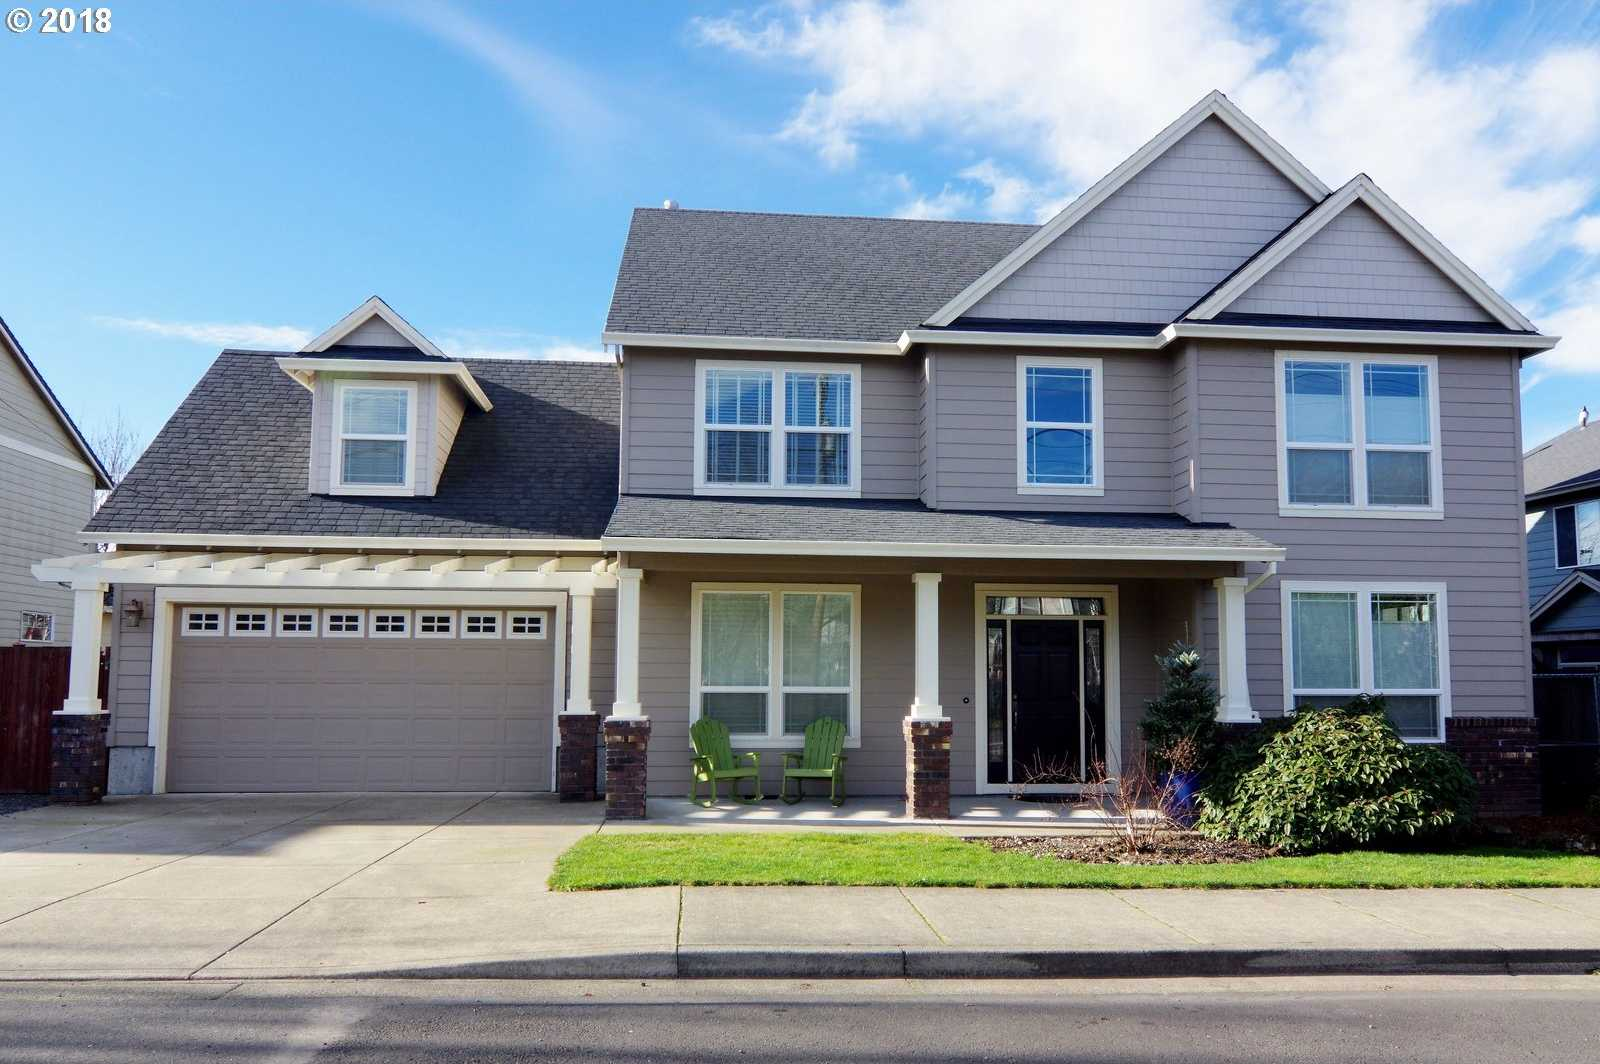 $445,000 - 4Br/3Ba -  for Sale in Gresham